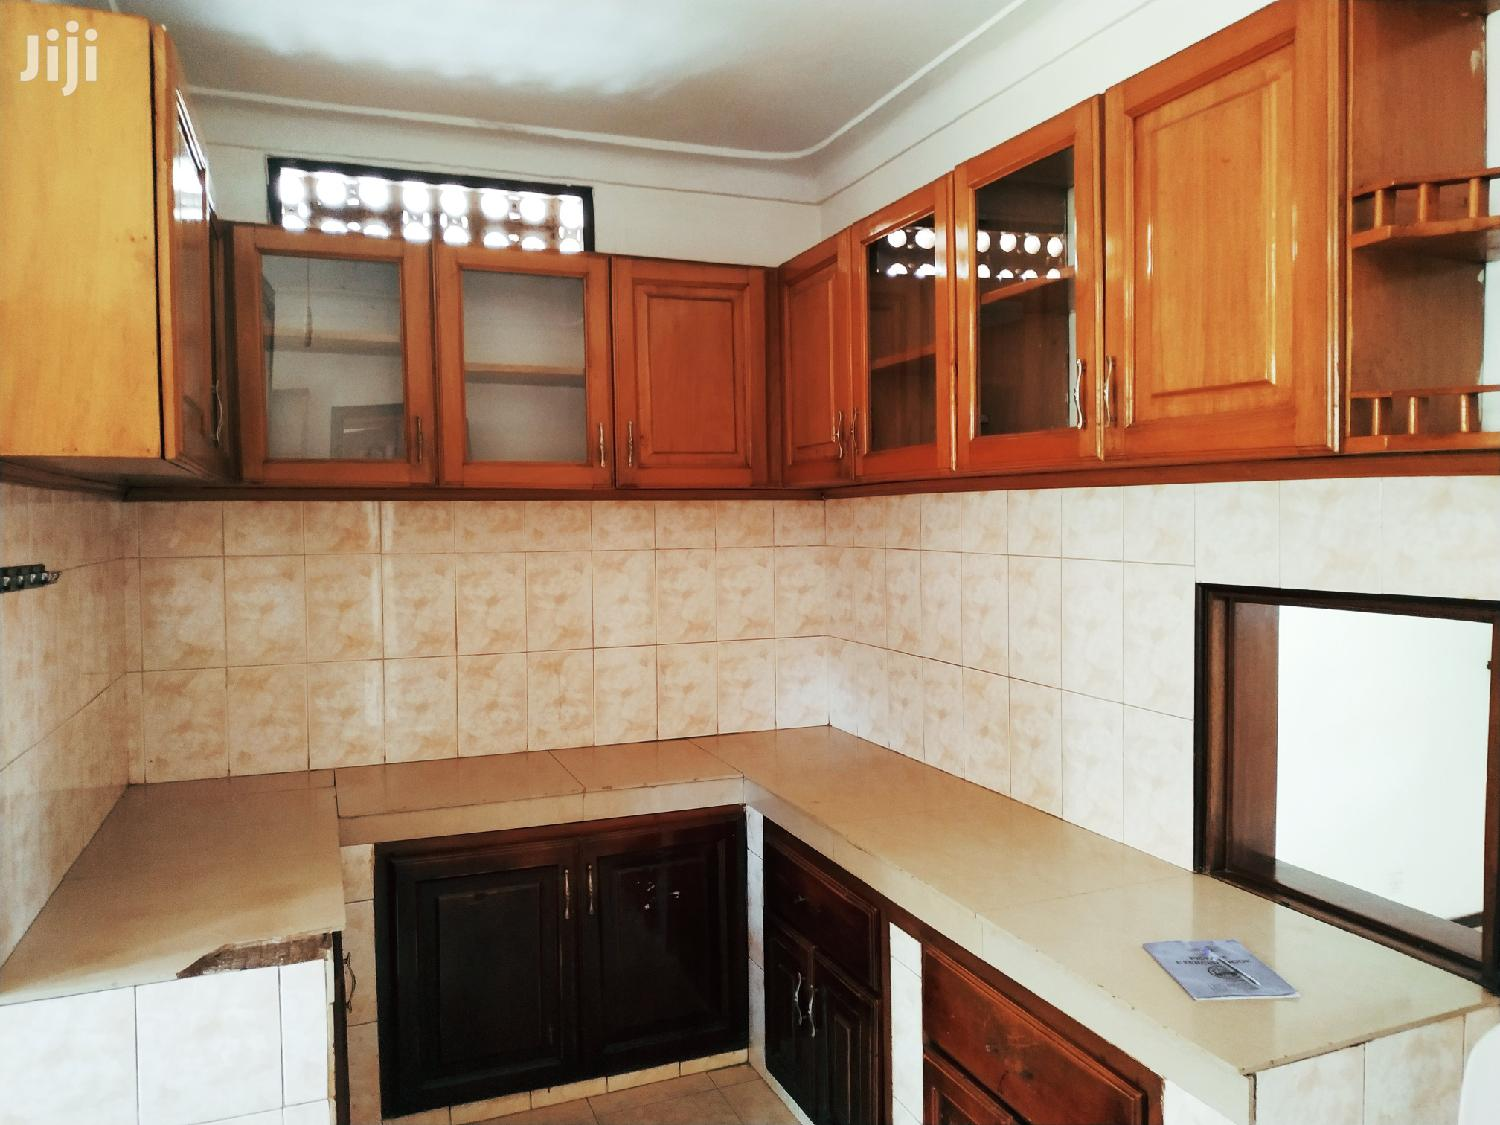 Three Bedroom House In Naalya For Sale | Houses & Apartments For Sale for sale in Kampala, Central Region, Uganda